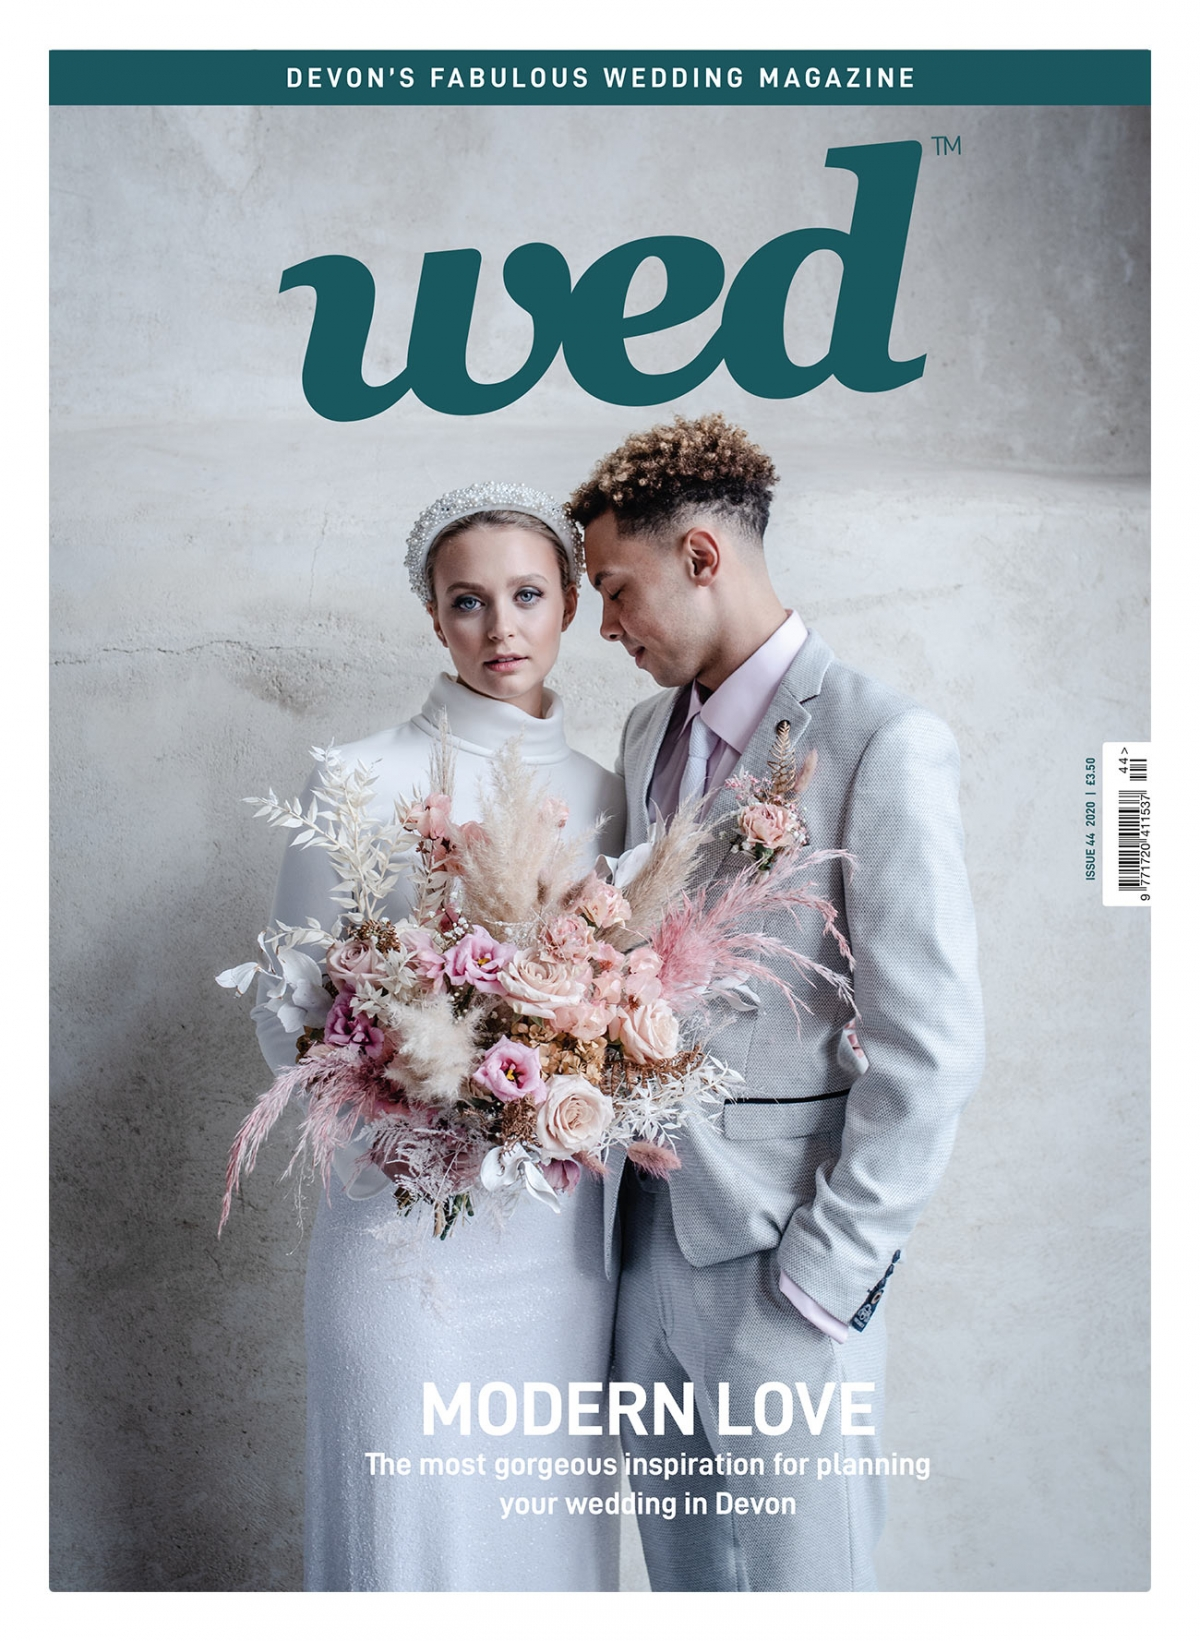 Order a print copy of Devon Wed Magazine - Issue 44